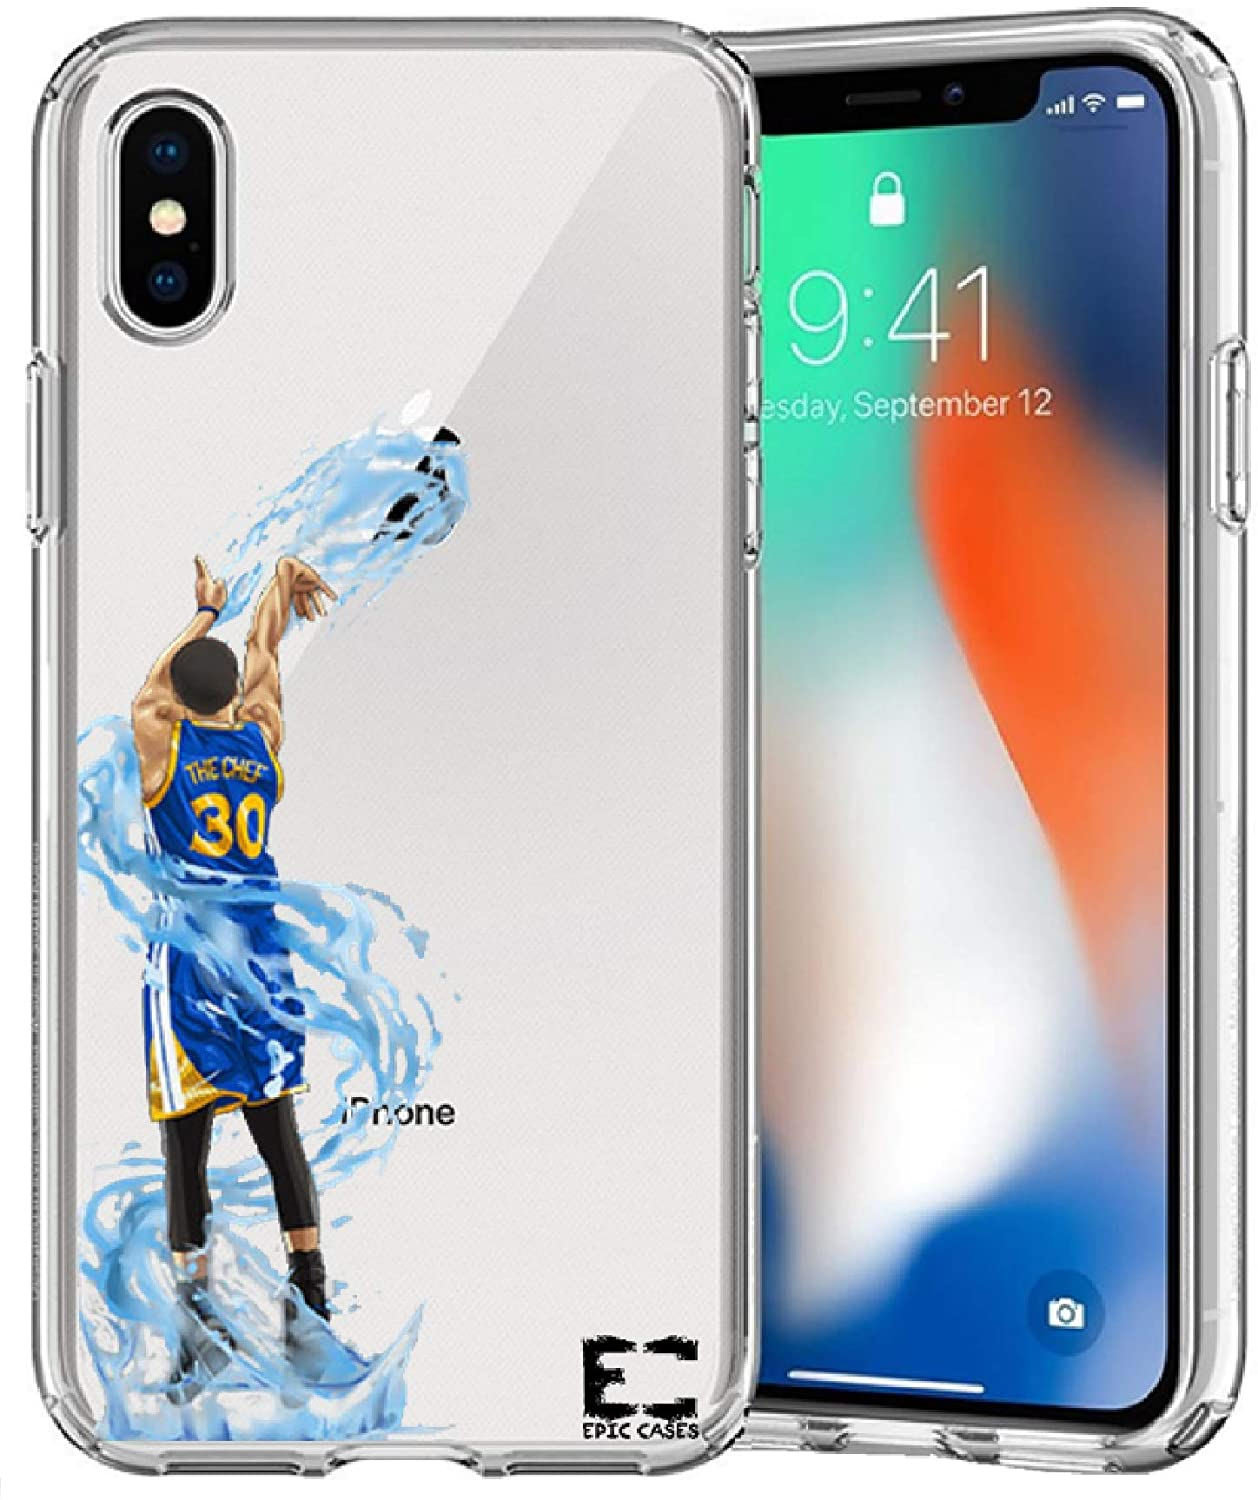 iPhone XR Case Epic Cases Ultra Slim Thin Light Wireless Charging Crystal Clear Basketball Series Soft Transparent TPU Case Cover Apple (Curry Warriors, iPhone XR)